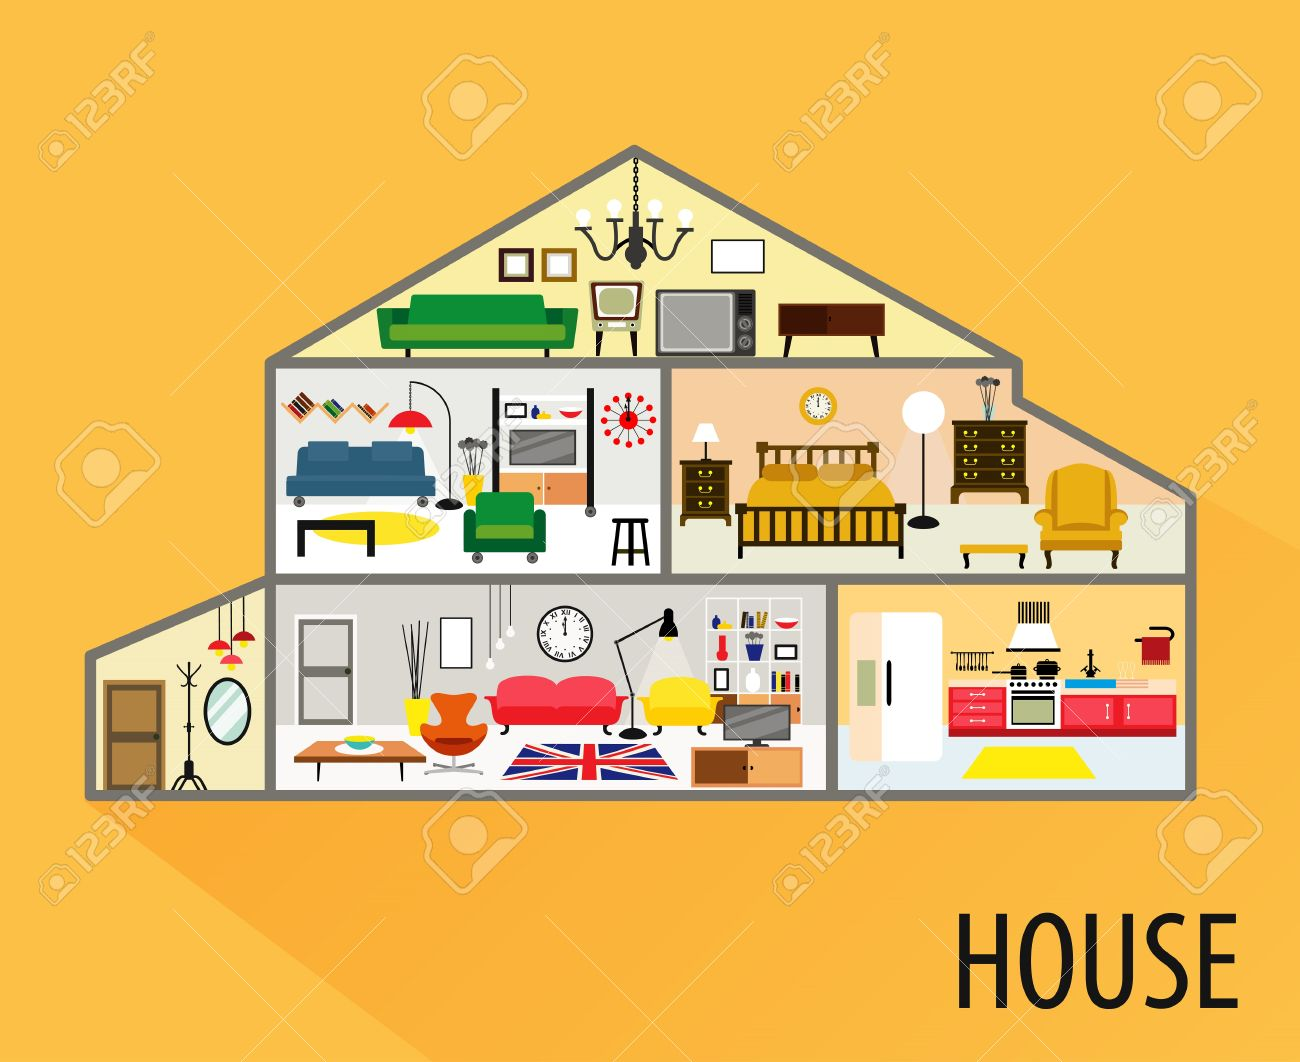 All rooms in the house rooms of homes vector art image illustration - House Cartoon Interior Cartoon Living Rooms With Furniture Stock Vector 41754298